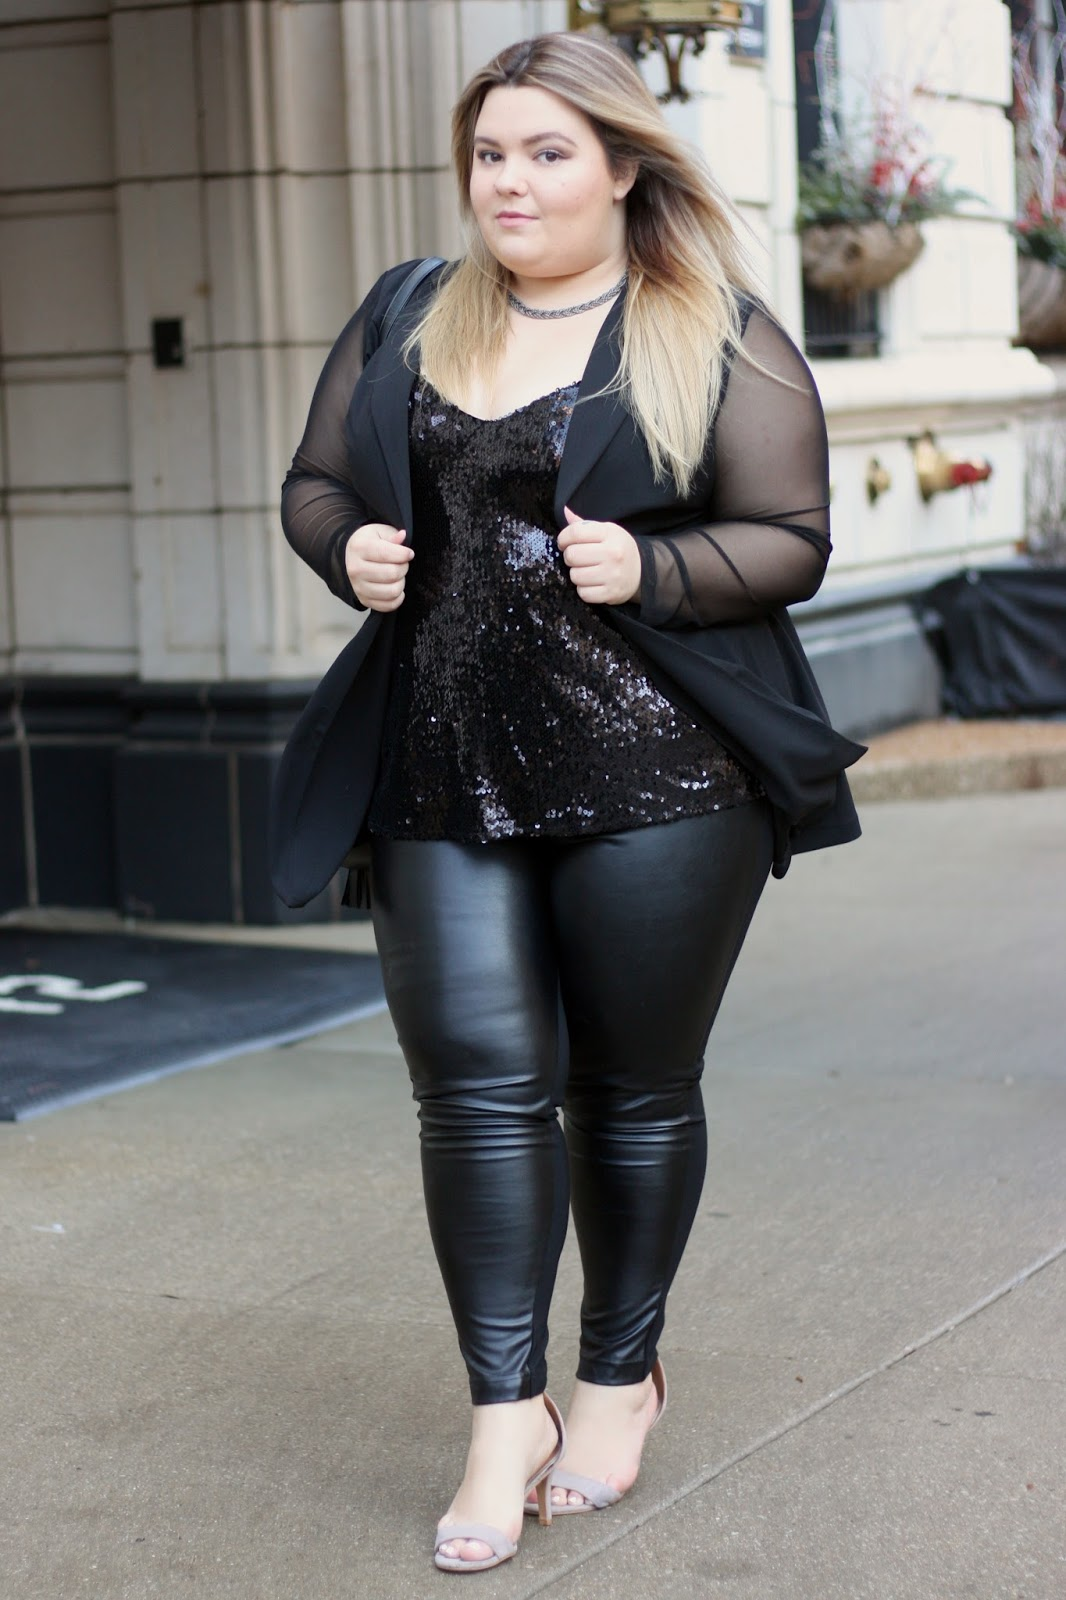 fashion to figure, natalie craig, where to shop for plus size clothing, natalie in the city, see through mesh, blazer, sequin tank top, plus size leather leggings pants, chicago blogger, valentines day date night ideas, valentines day outfit, fatshion, plus size blogger